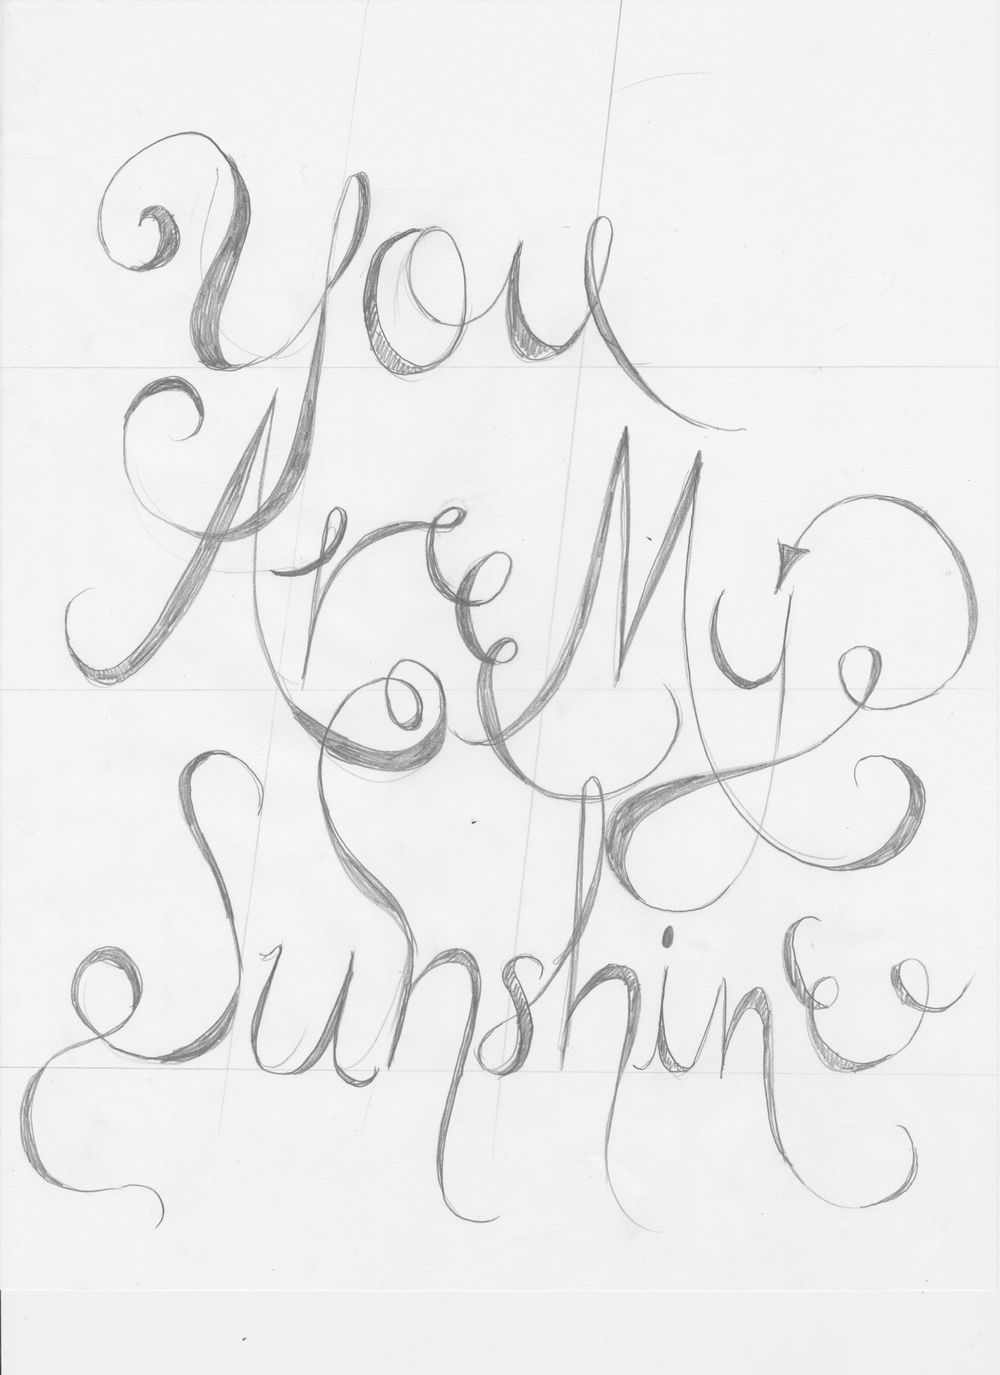 You are My Sunshine - image 1 - student project